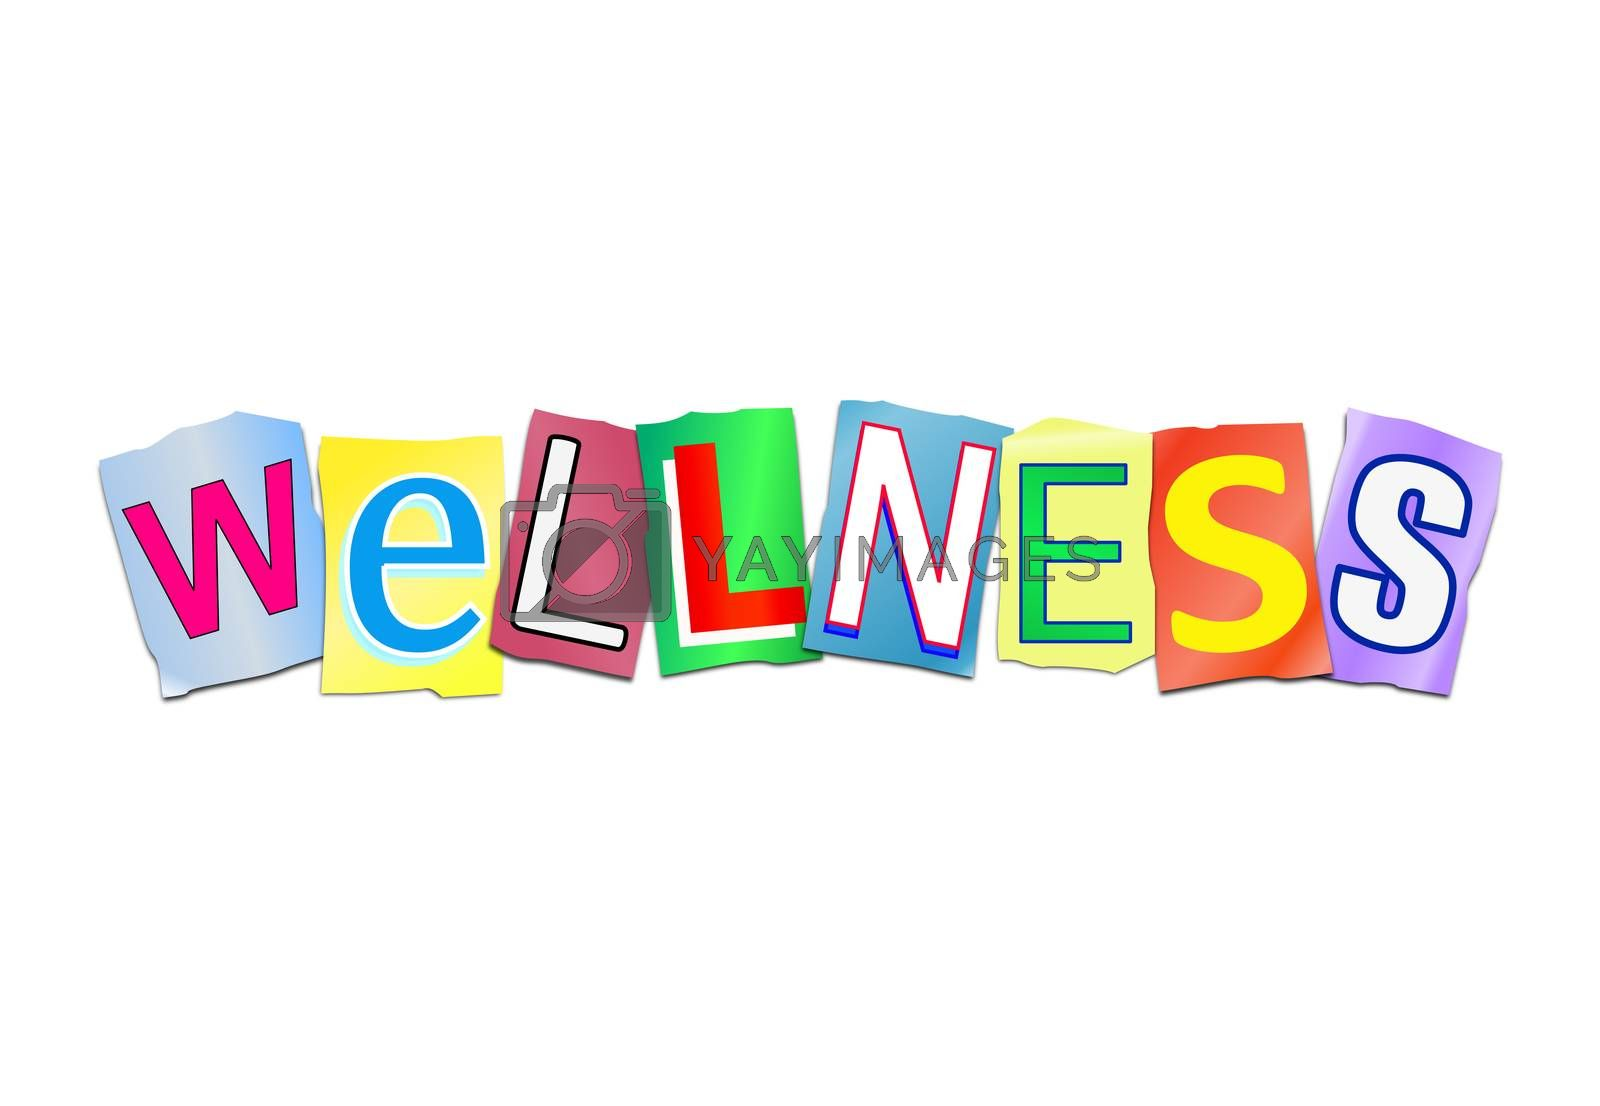 Illustration depicting a set of cut out printed letters arranged to form the word wellness.